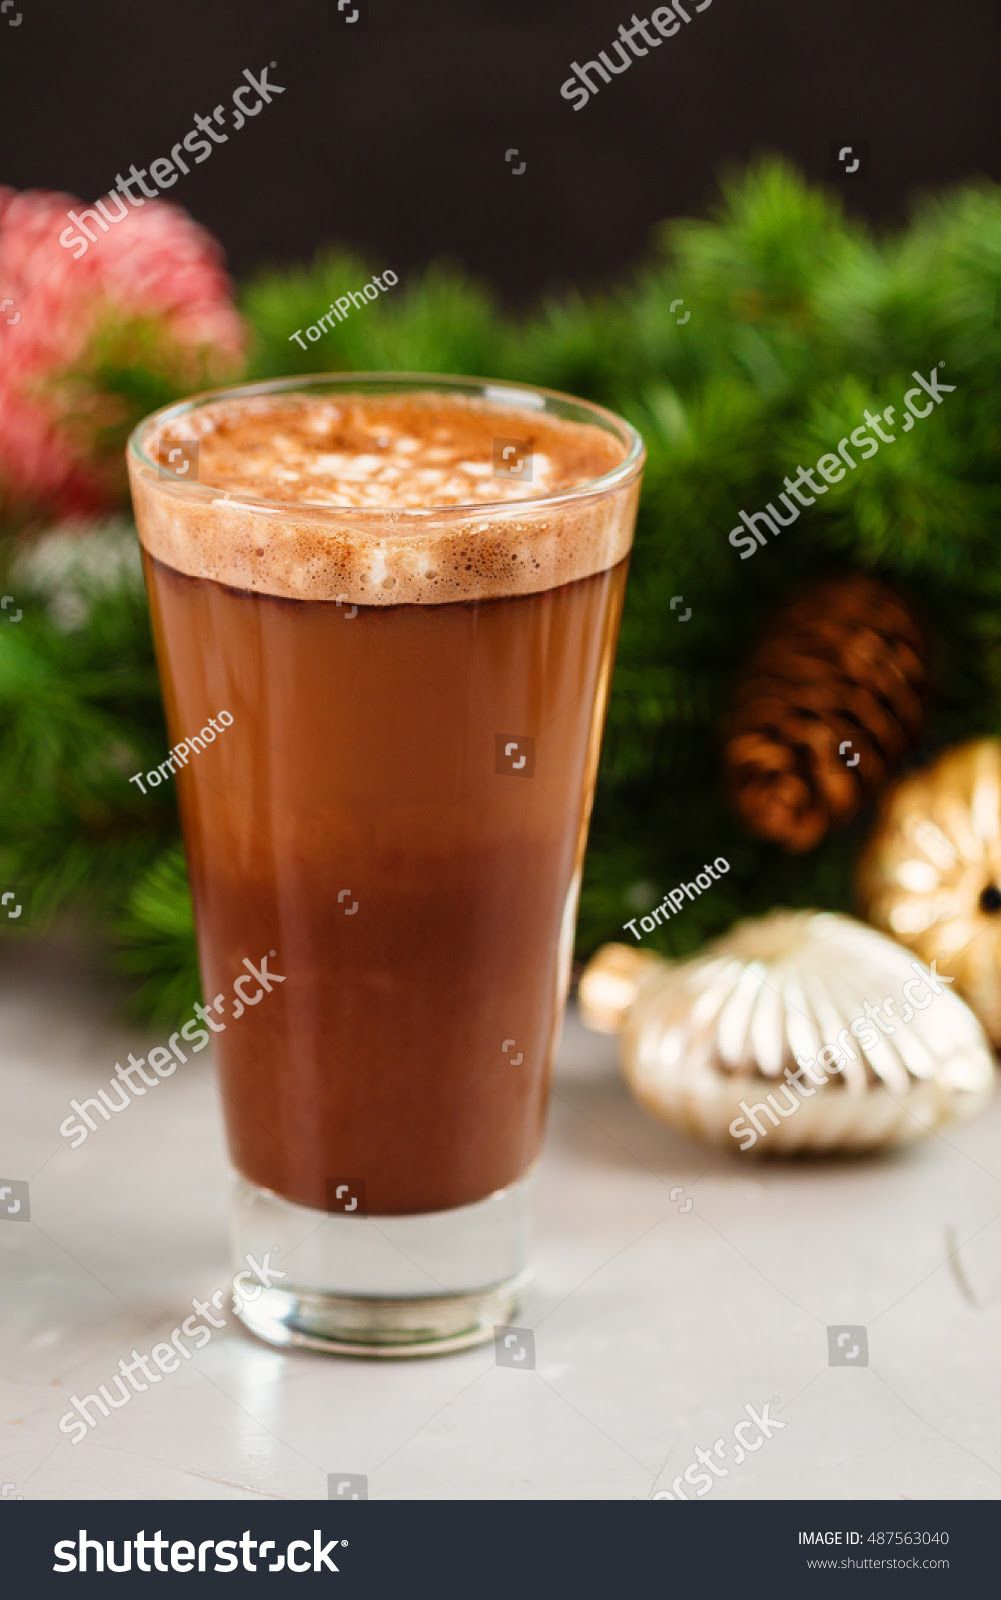 Hot chocolate with whipped cream in tall glass on Christmas background with decorations